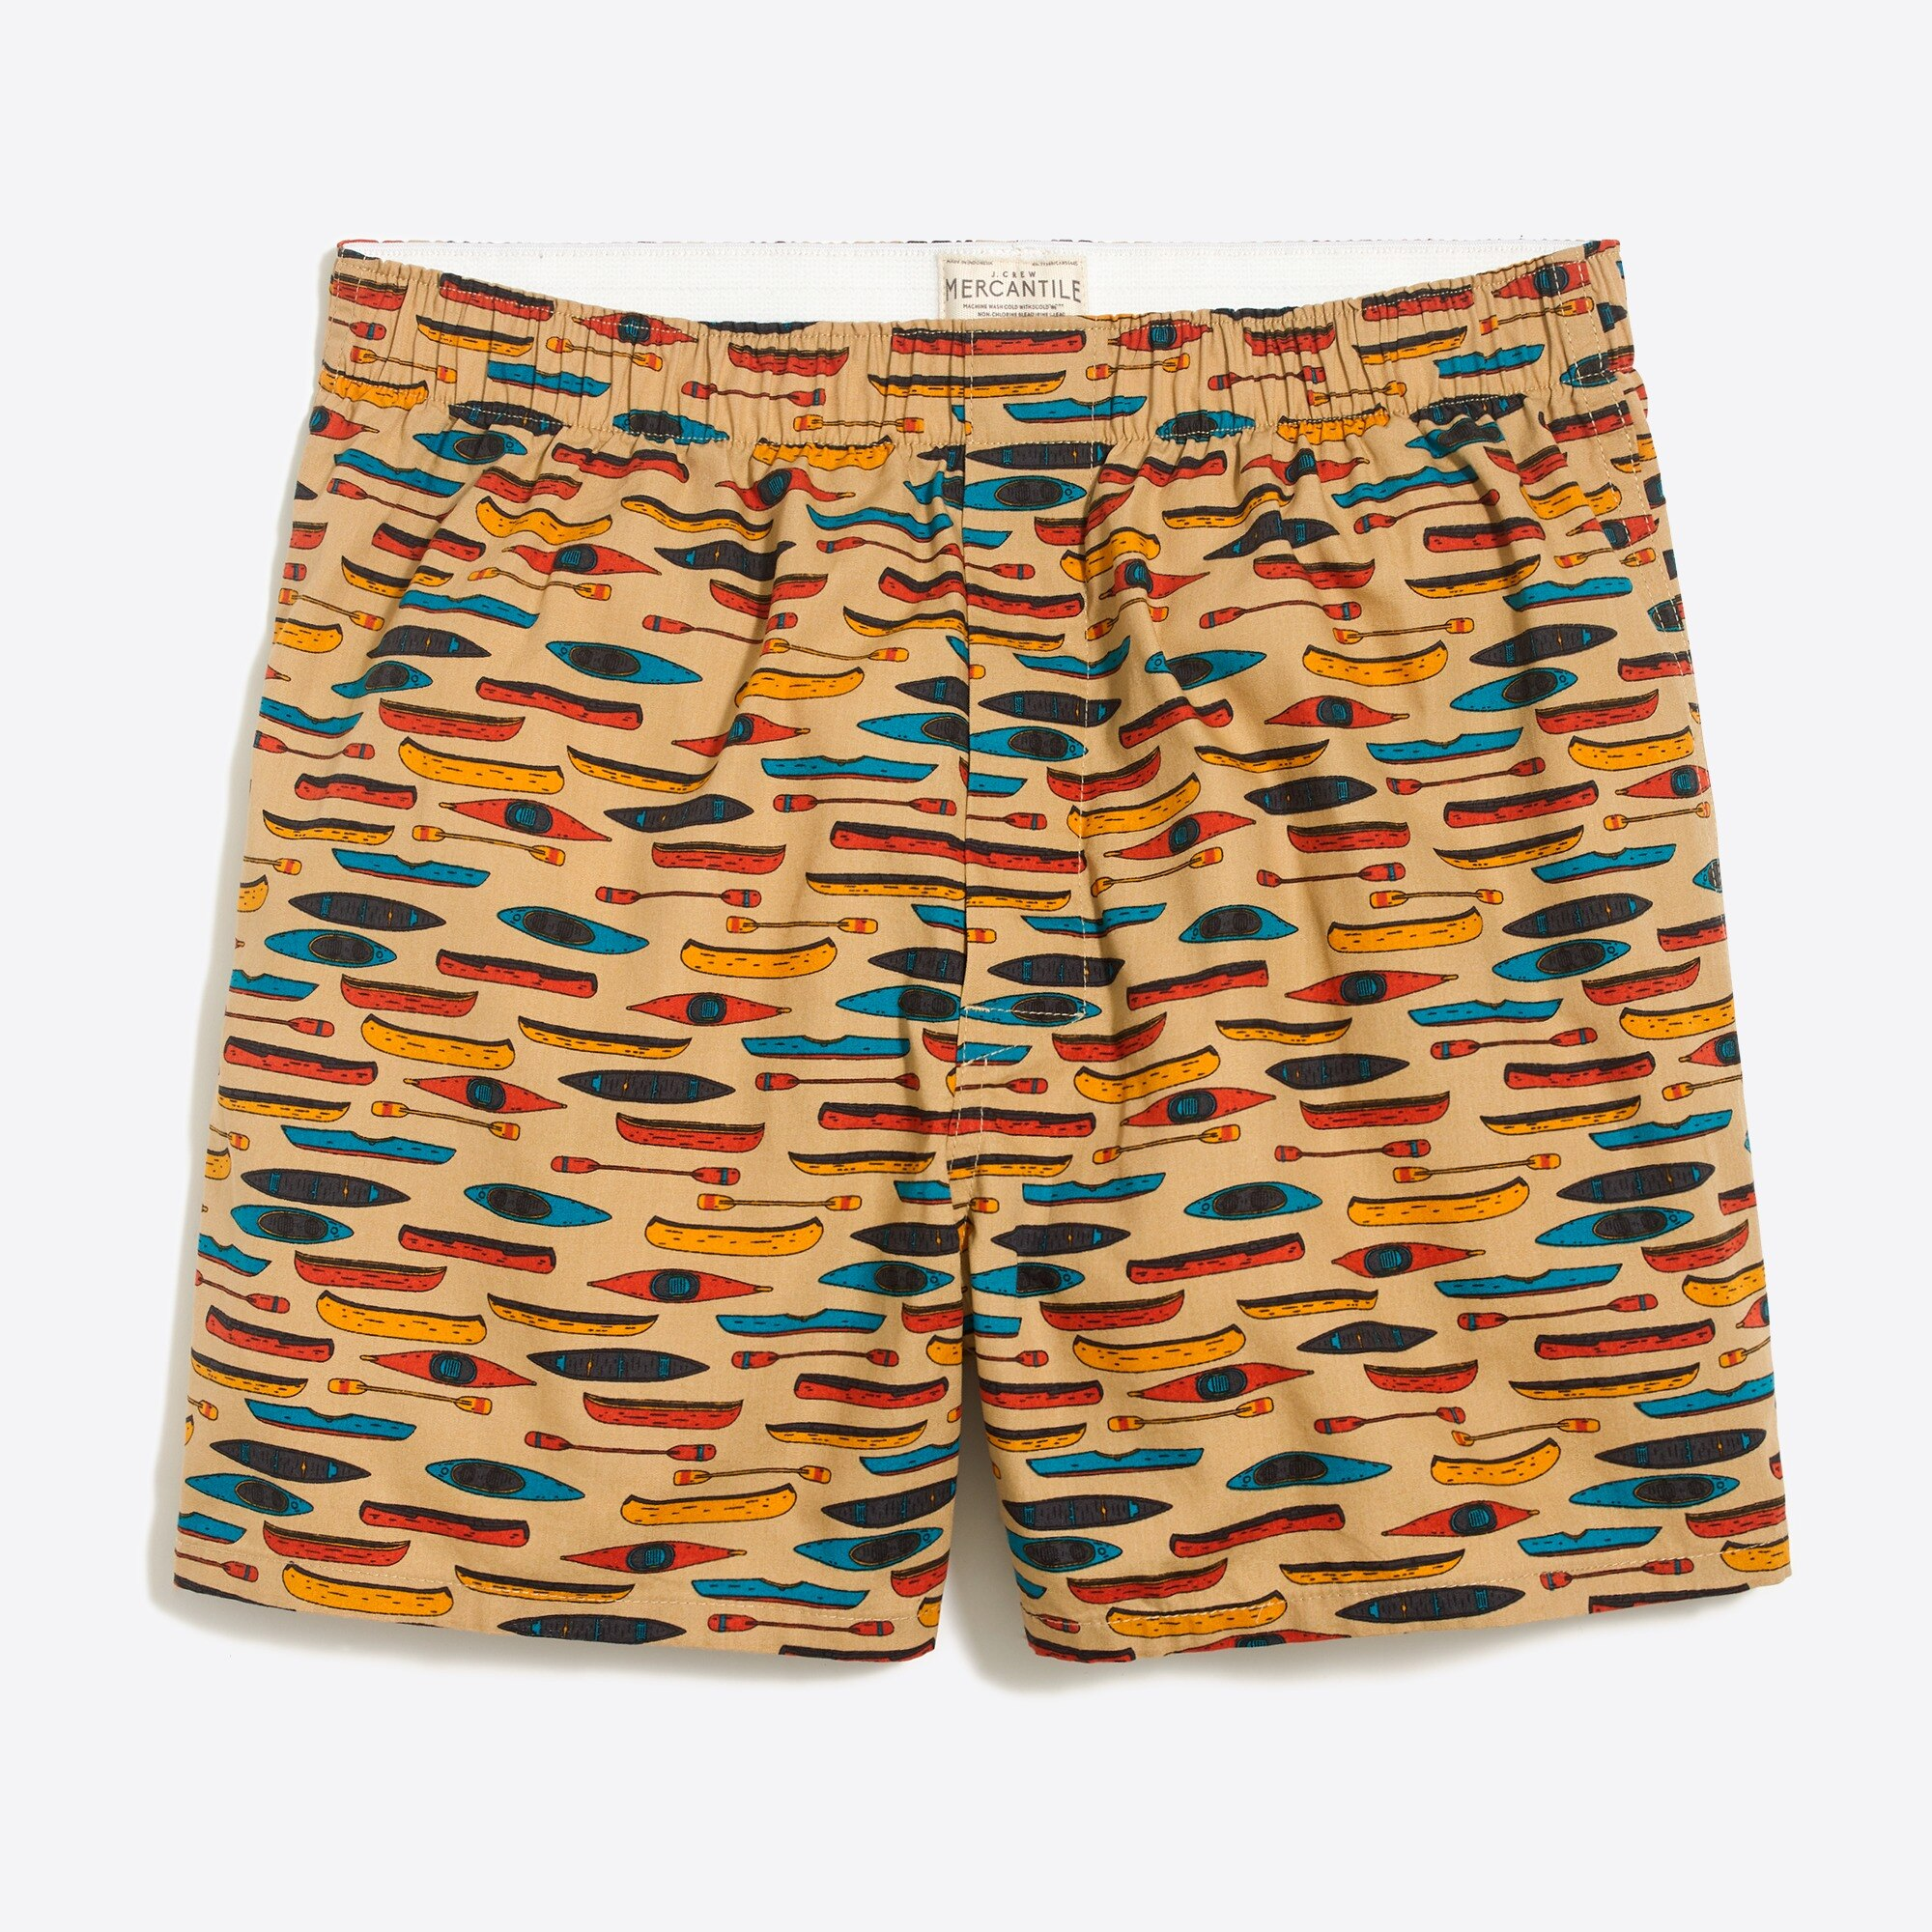 factory mens J.Crew Mercantile kayak and canoe boxers